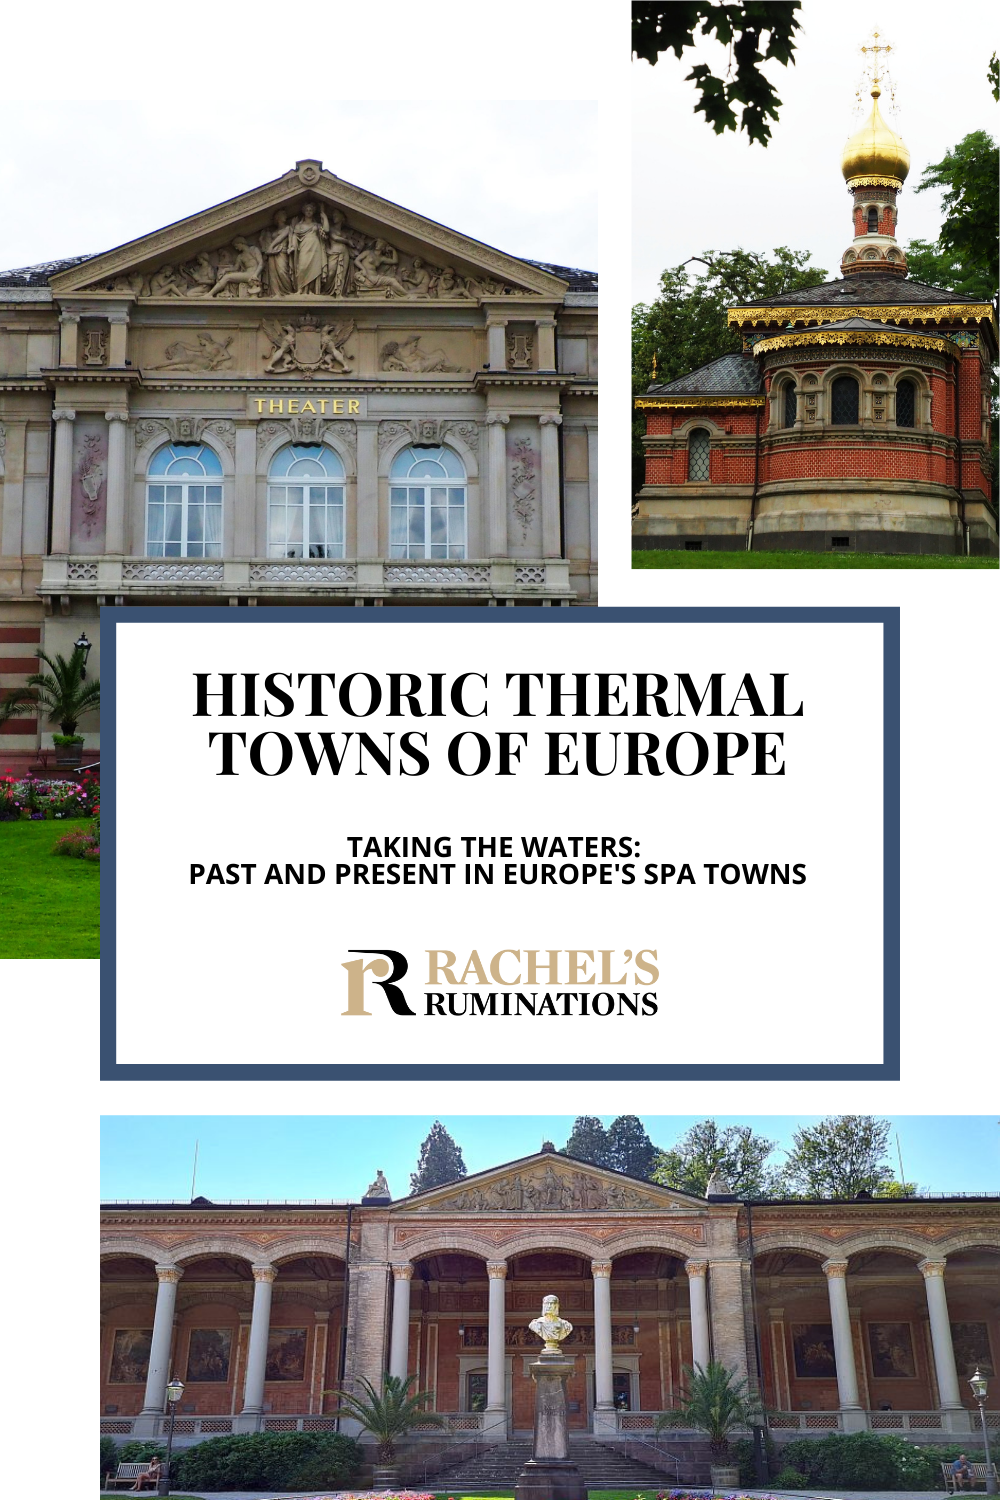 In the 19th century, European hot springs became gathering places for the rich and titled, and the historic thermal towns that grew around them still exist today. Read about them here! via @rachelsruminations